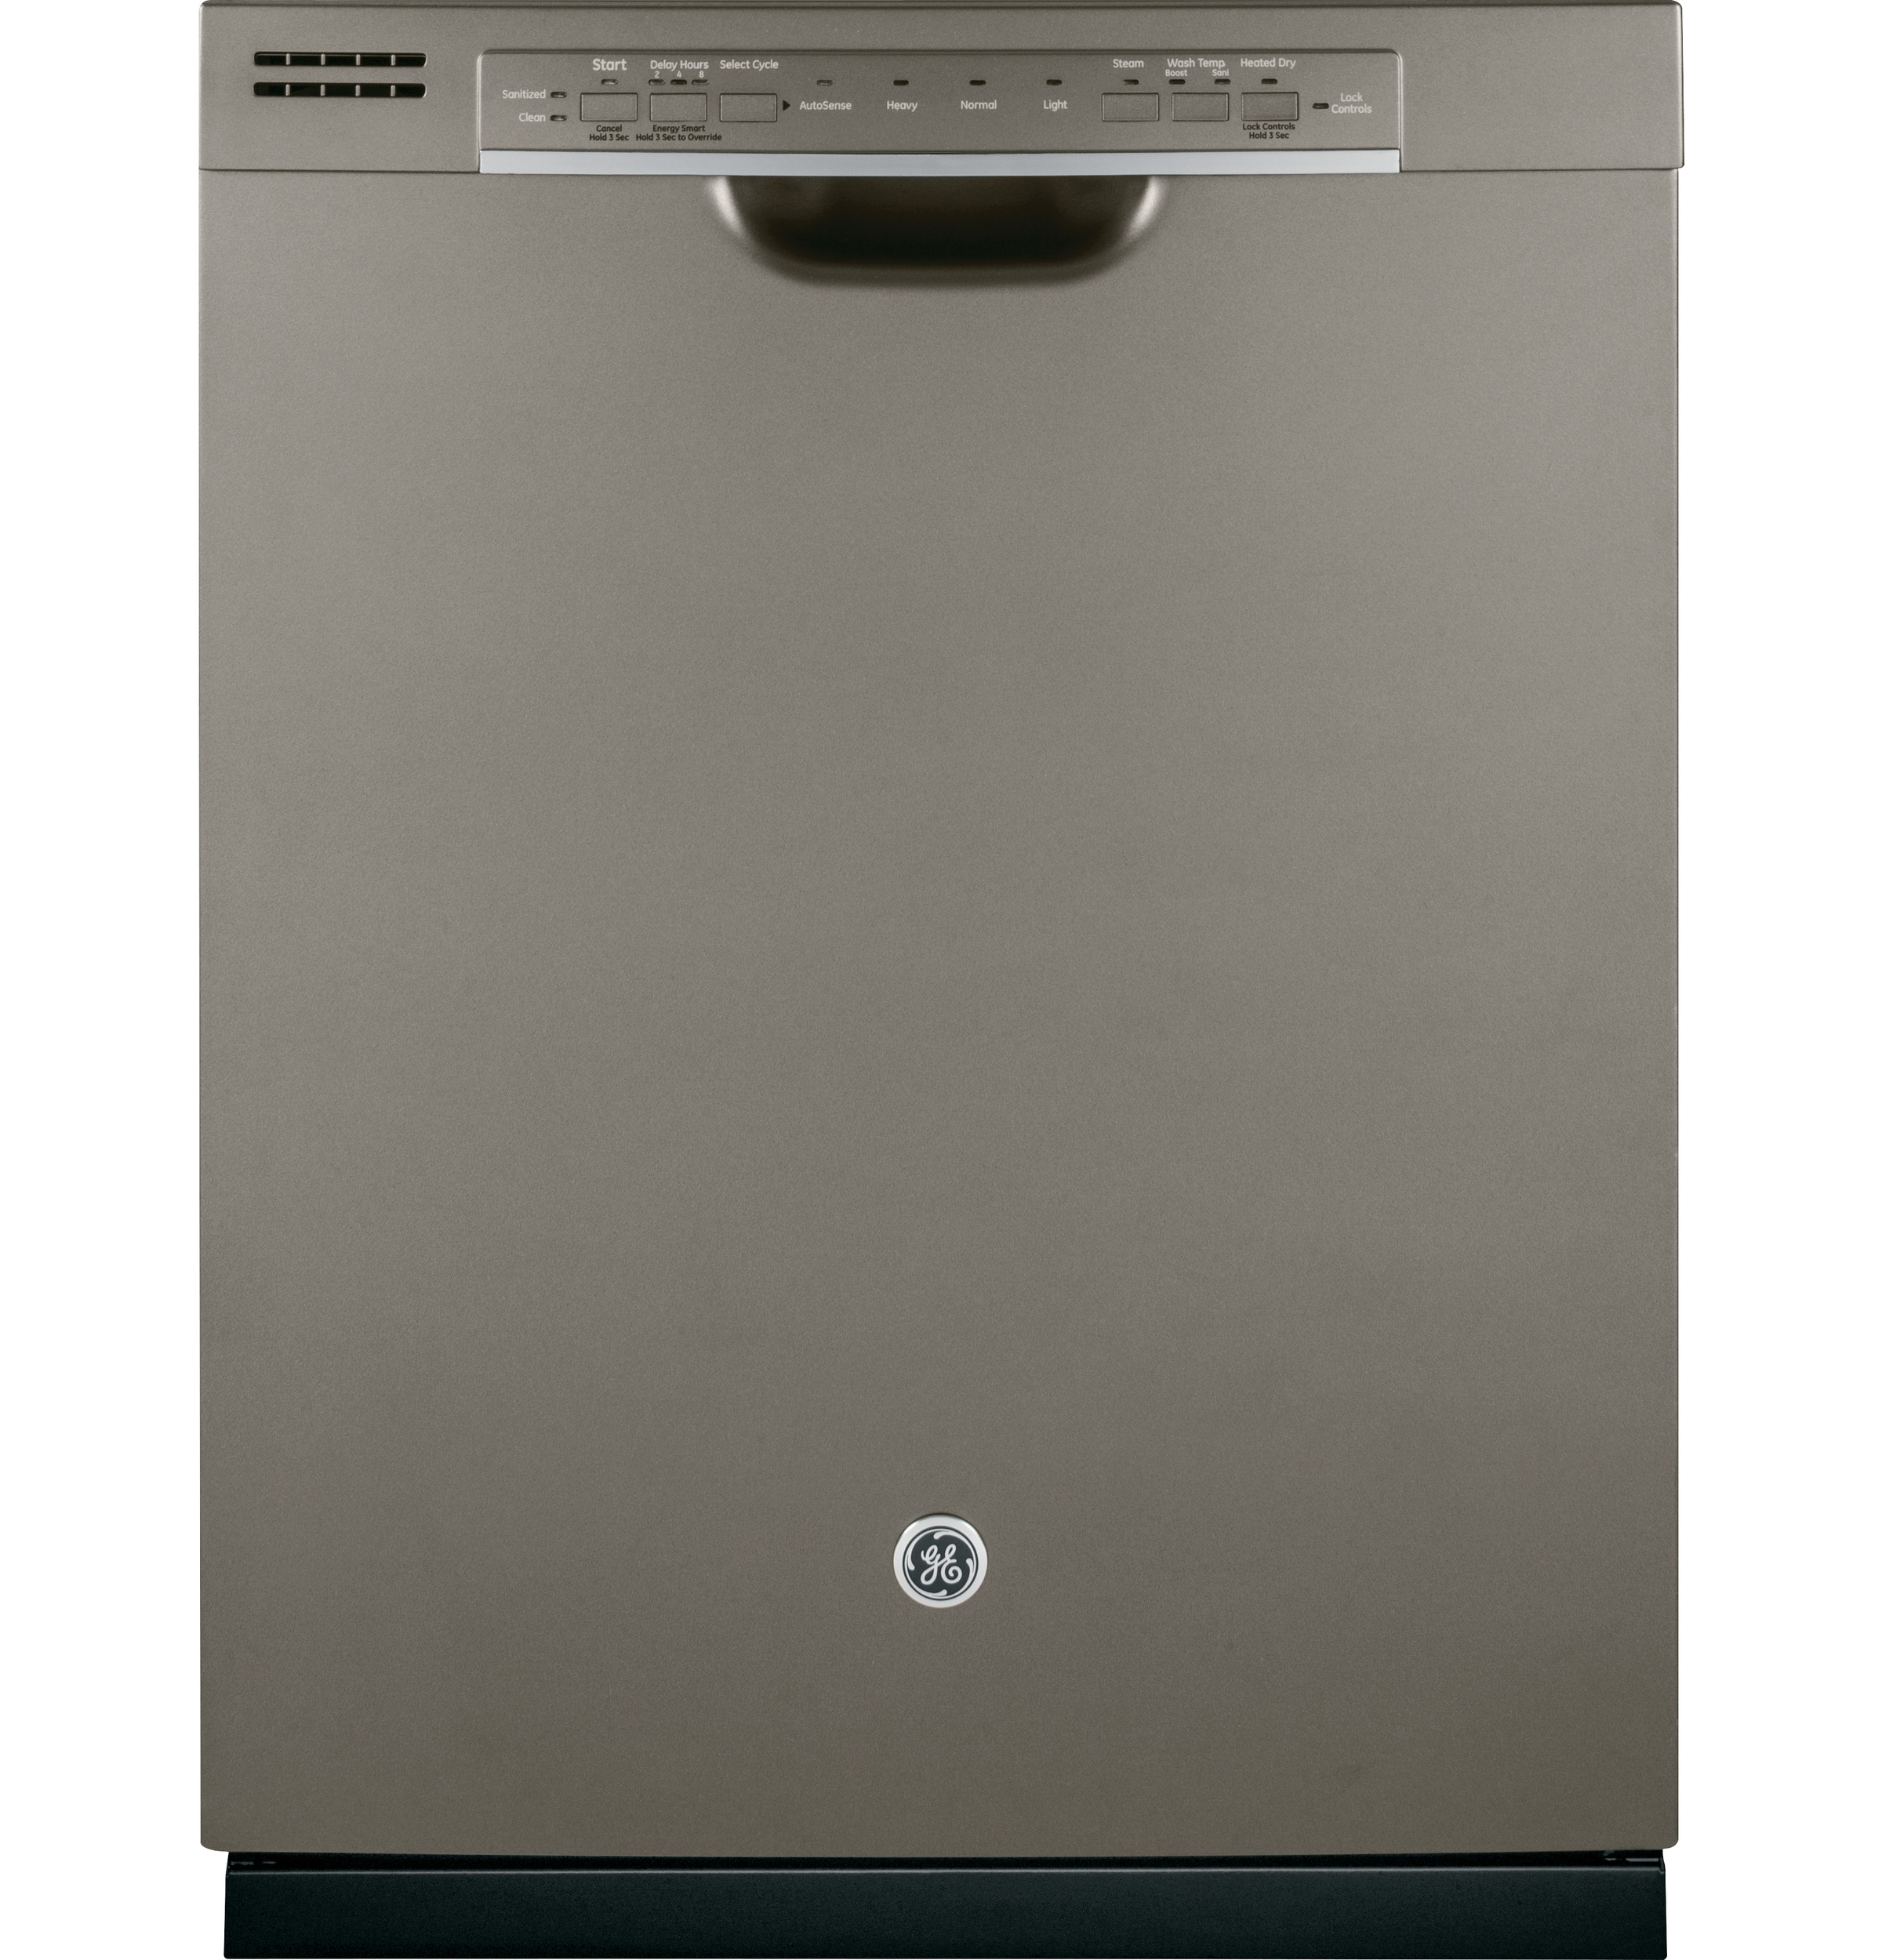 Ge Hybrid Stainless Steel Interior Dishwasher With Front Controls Gdf540hmfes Ge Appliances